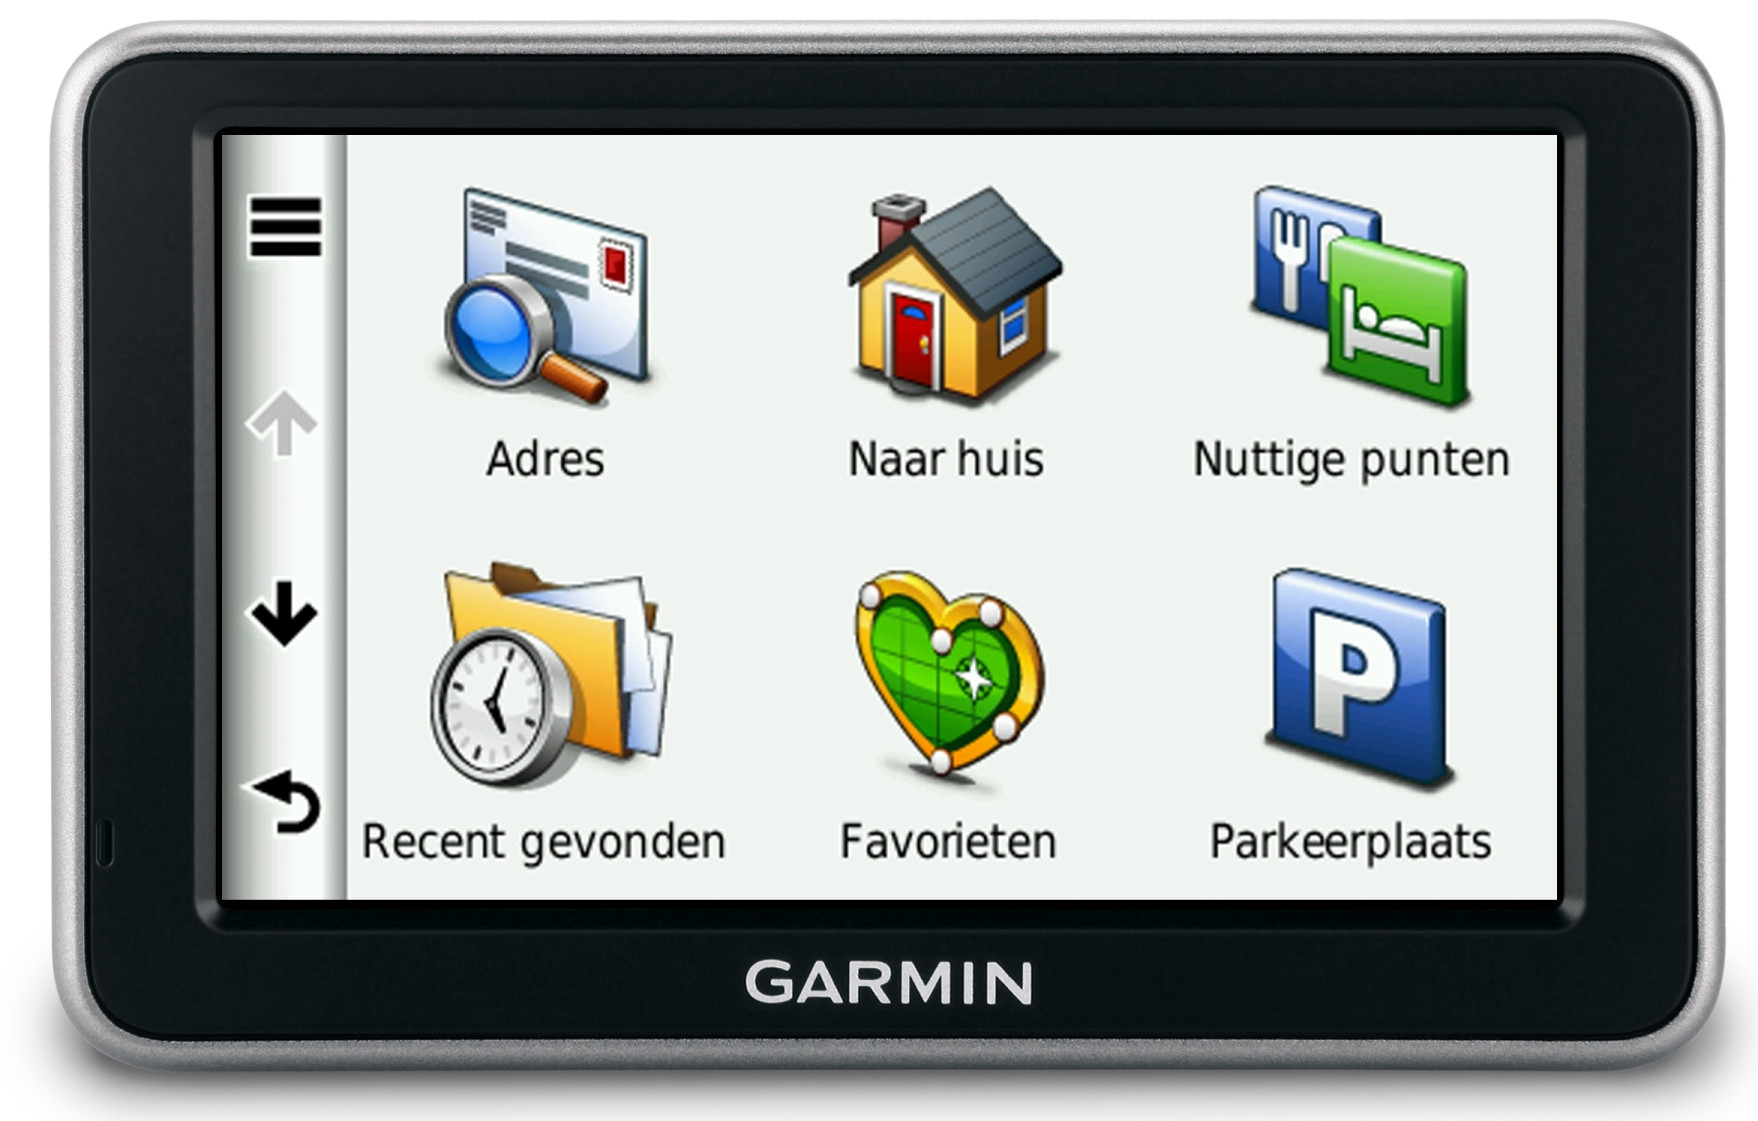 Garmin Nuvi 2460 Smart Traffic + LMU